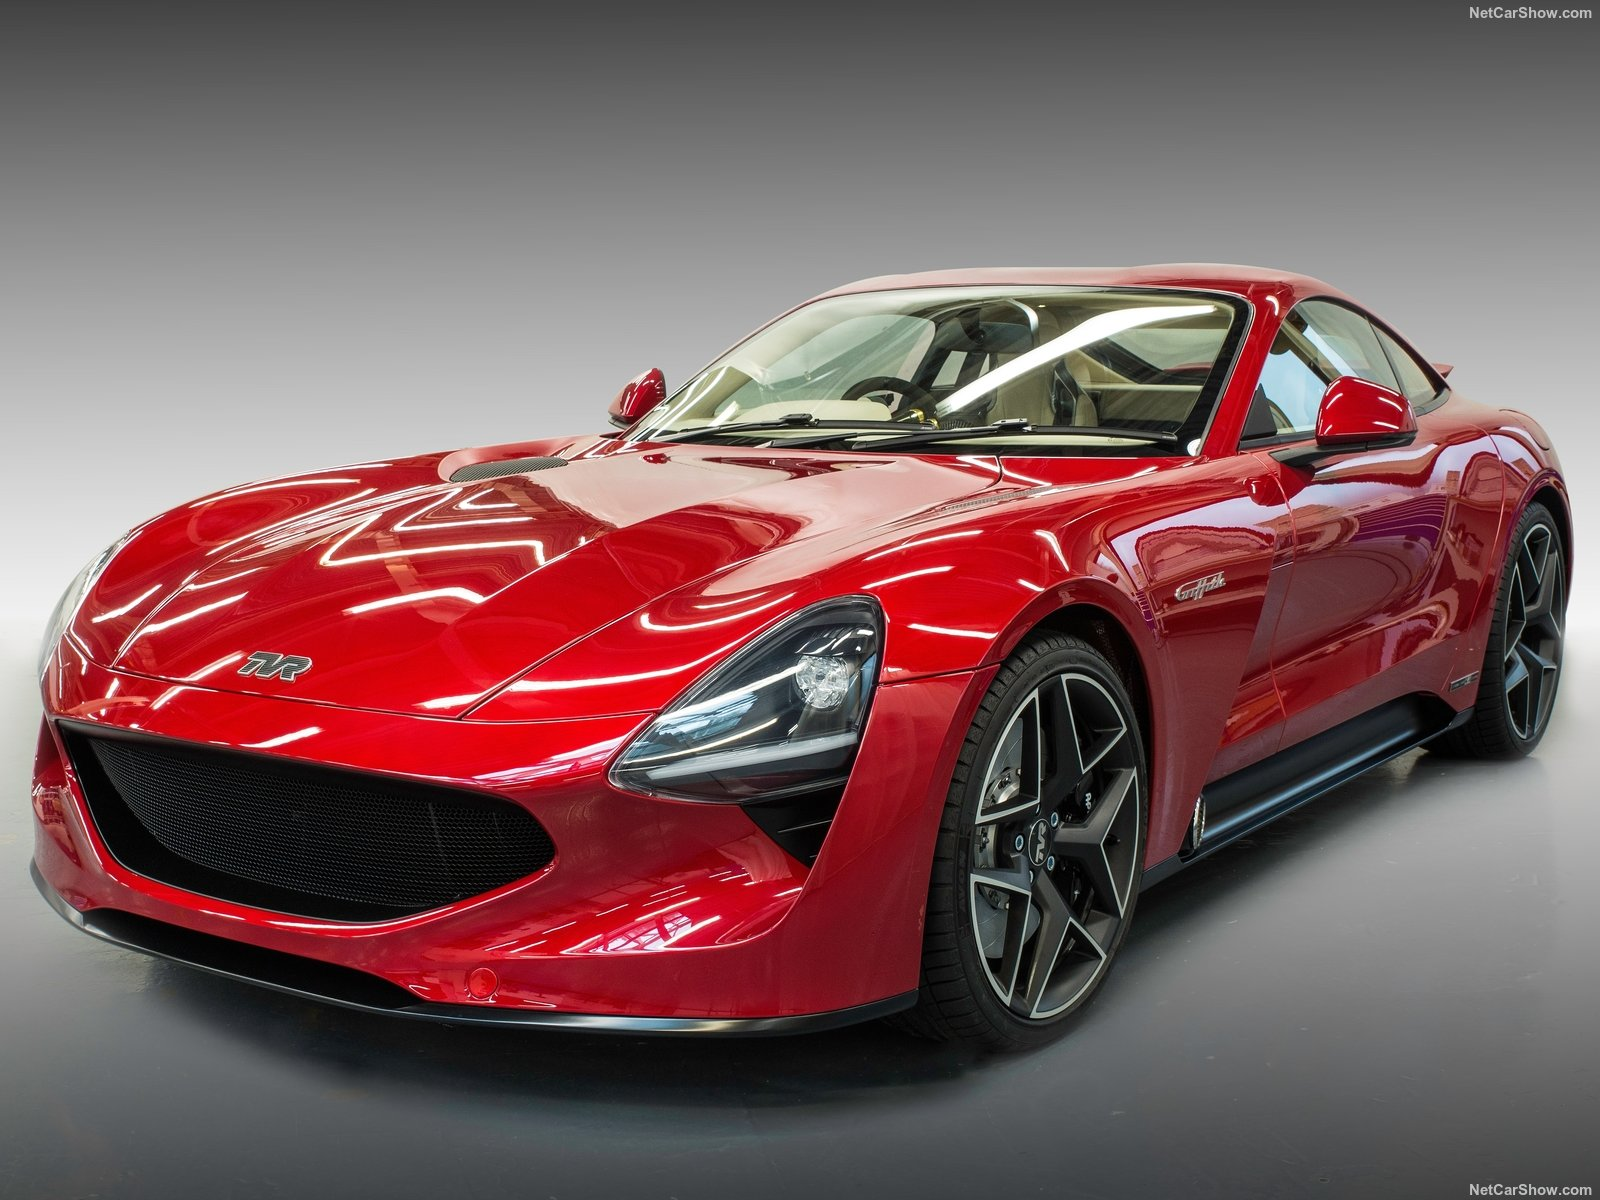 TVR-Griffith-2019-1600-02 Amazing Tvr Griffith Left Hand Drive Cars Trend